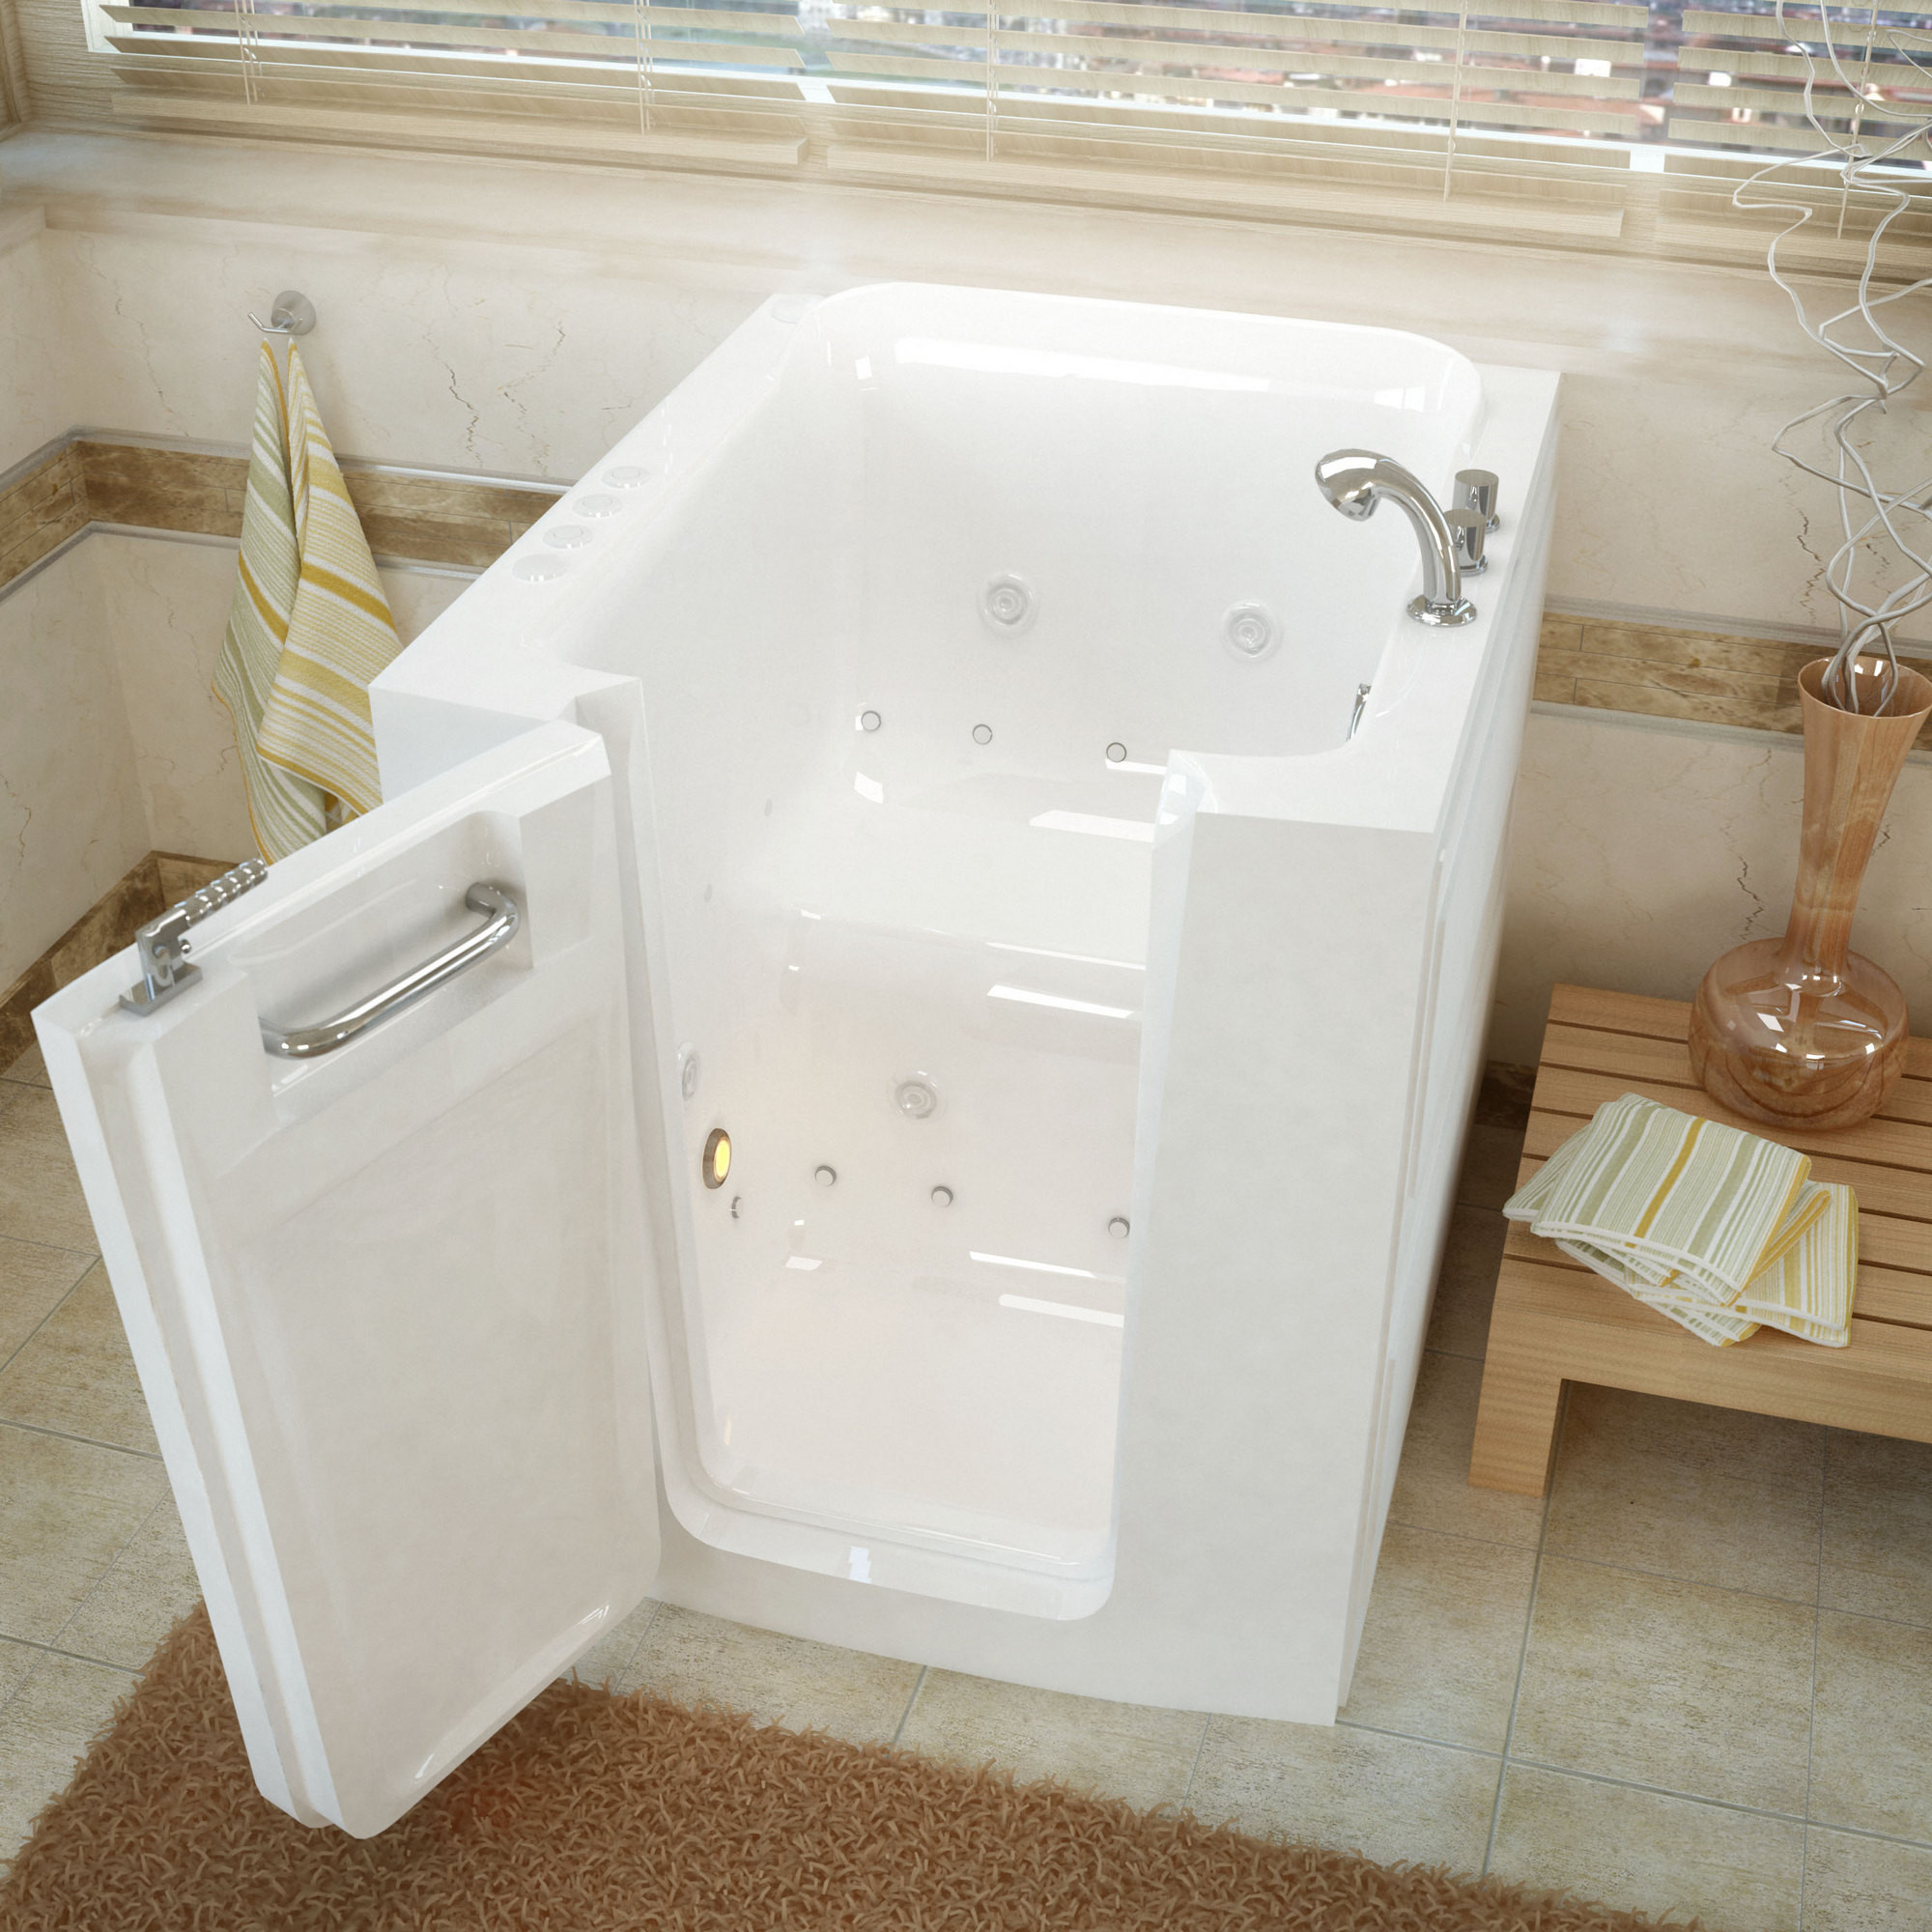 MediTub 3238LWD Walk-In Left Door White Whirlpool And Air Jetted Bathtub